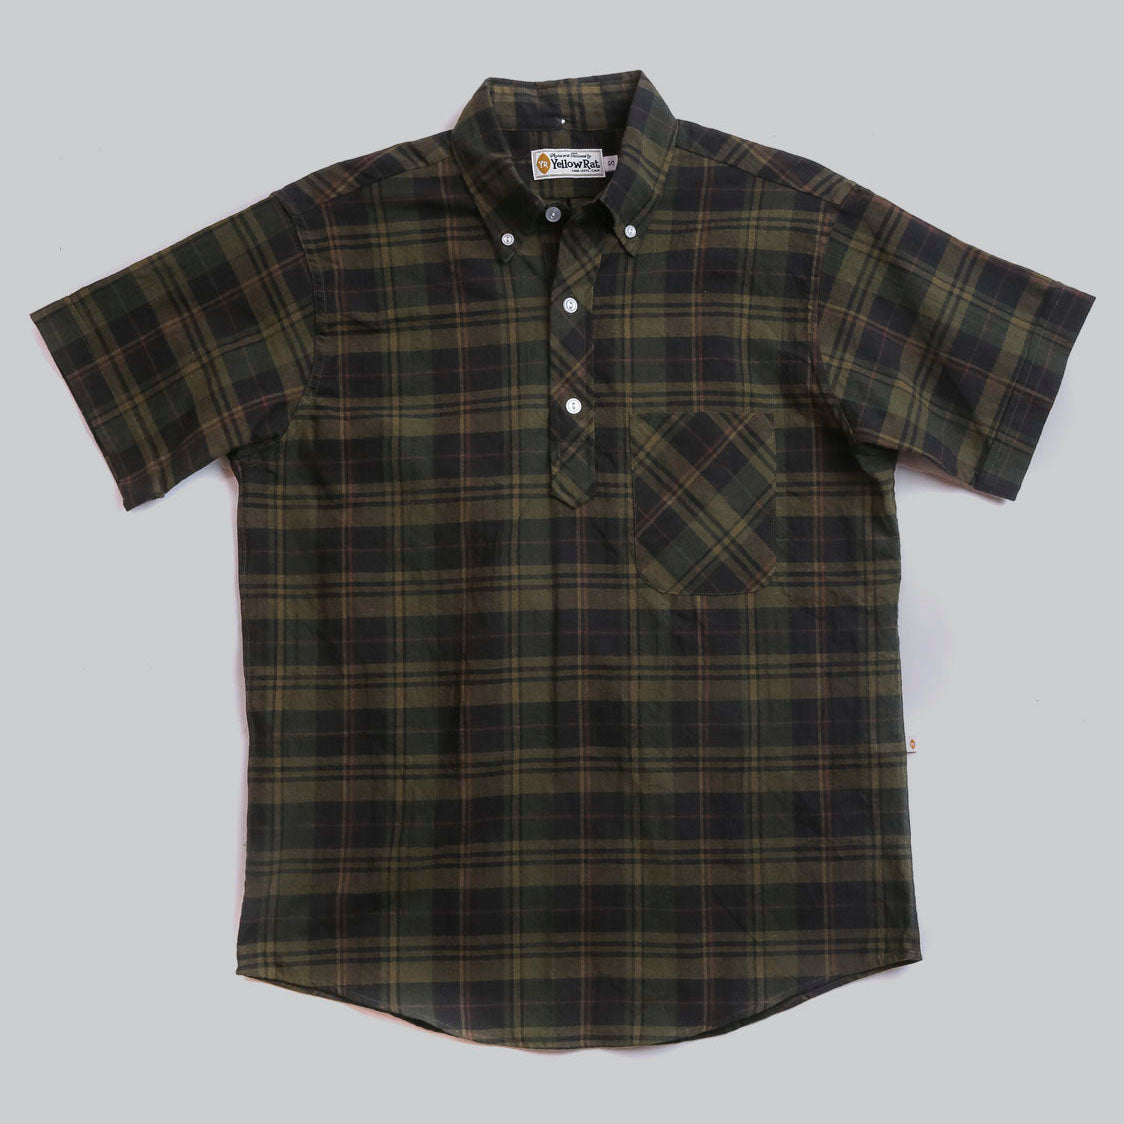 Pull Over Button-down Shirt I (Moss x Black)